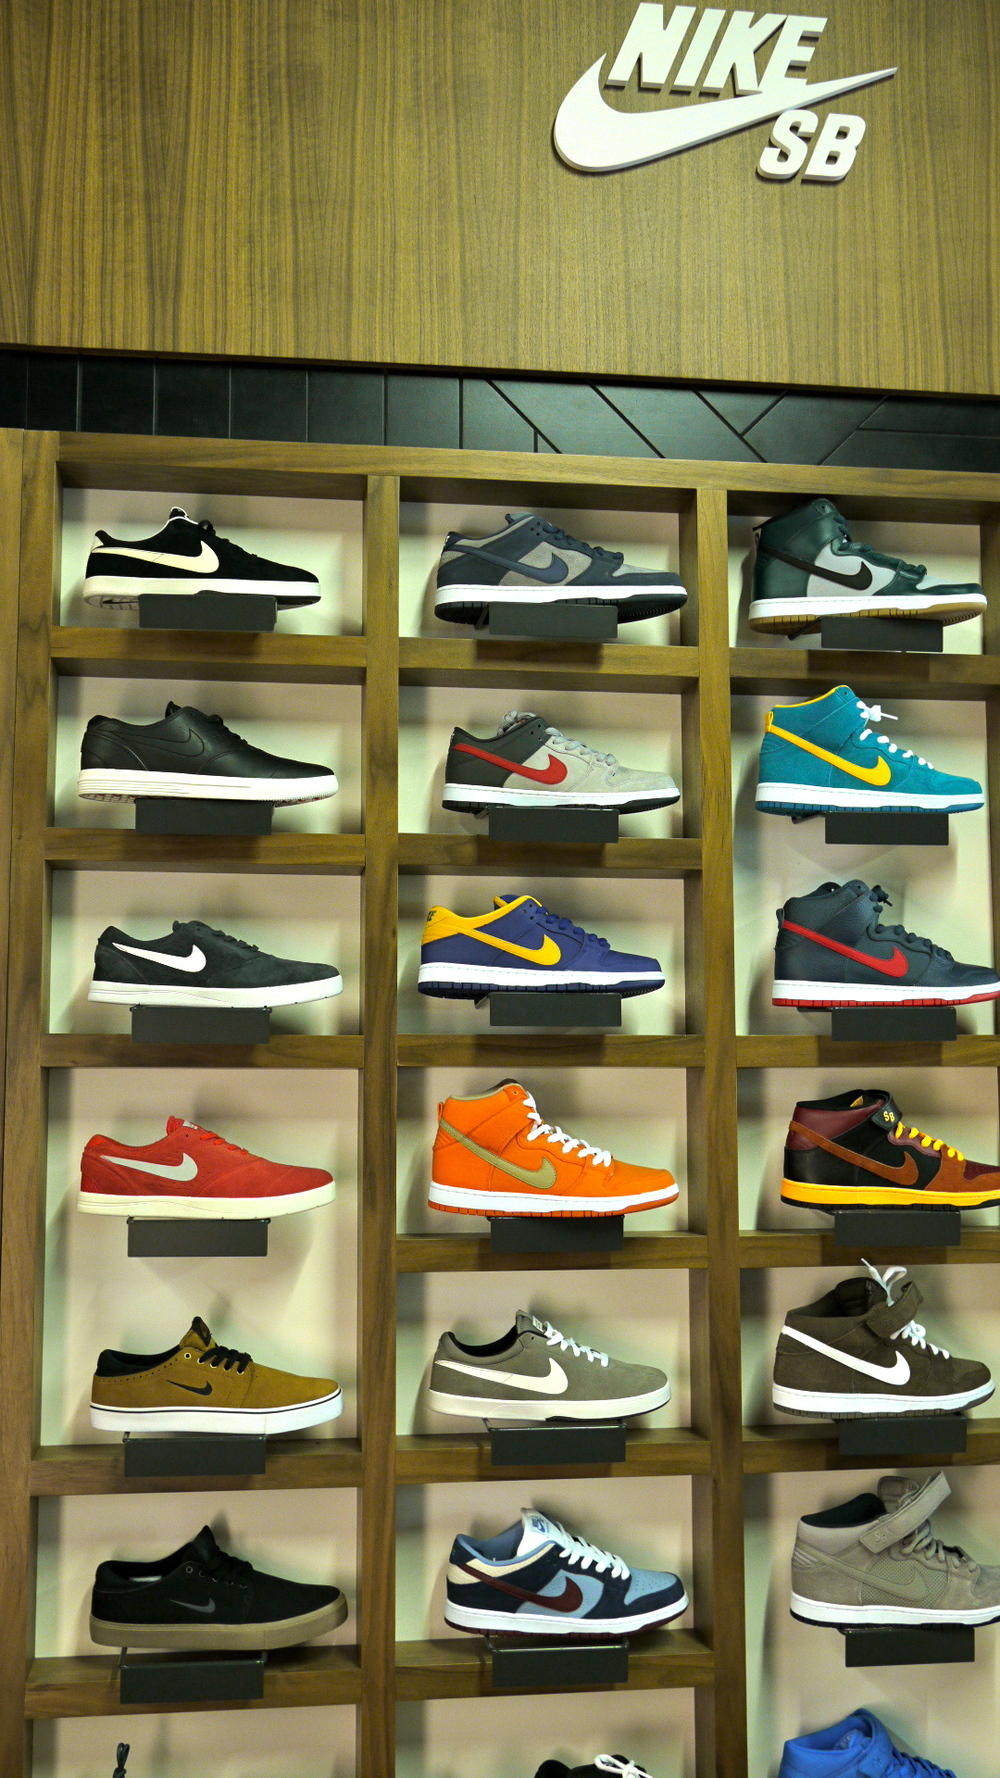 Nike SB Stopped By The Shop And Hooked Us Up With Some Epic New Displays Stop Store To Check Them Out Pick SBs While Youre Here